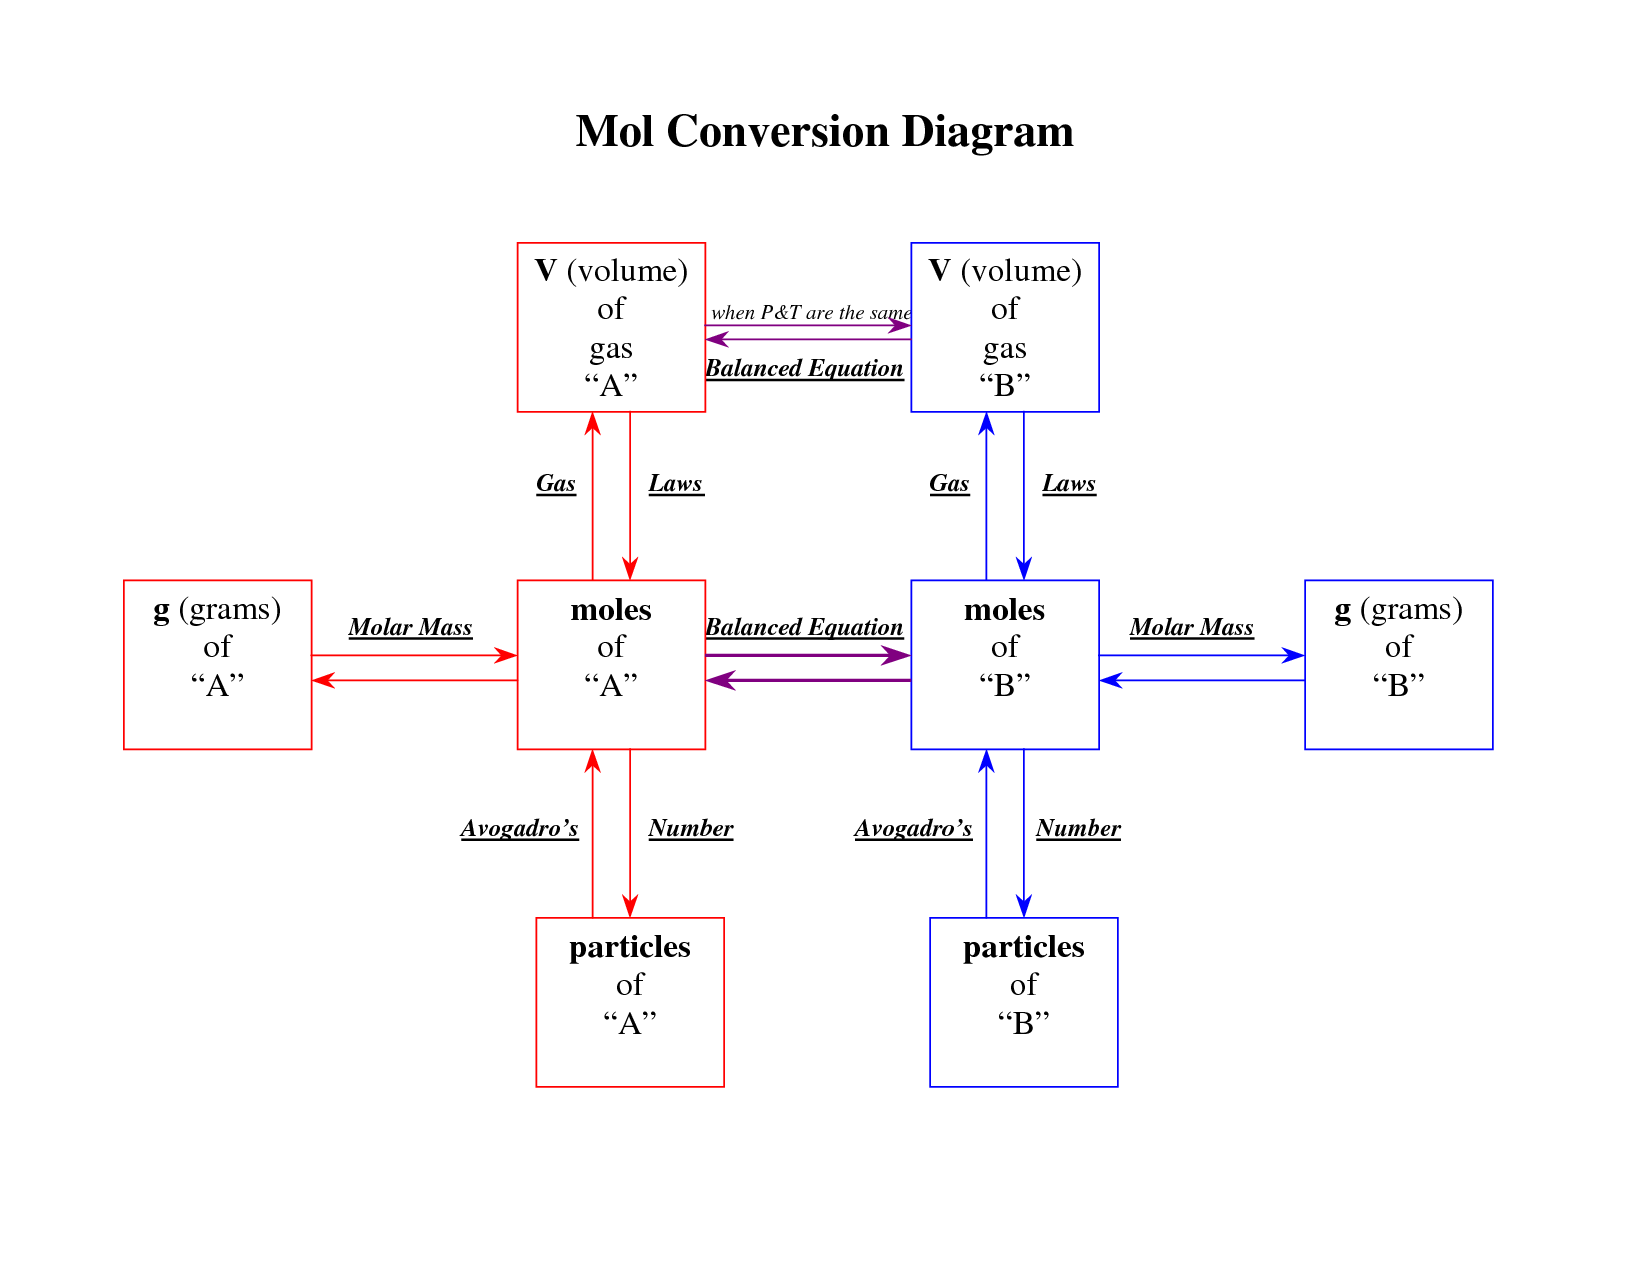 medium resolution of Cheat sheet for converting between moles and grams and atoms - Google  Search   Chemistry classroom